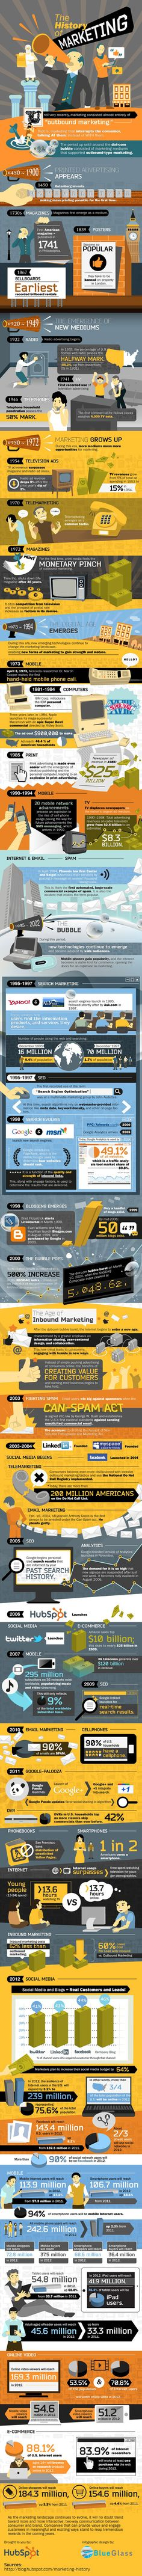 A (Kind of) Brief History of Marketing (Infographic)  Read more: http://www.entrepreneur.com/article/227438#ixzz2ZOh4MDCs